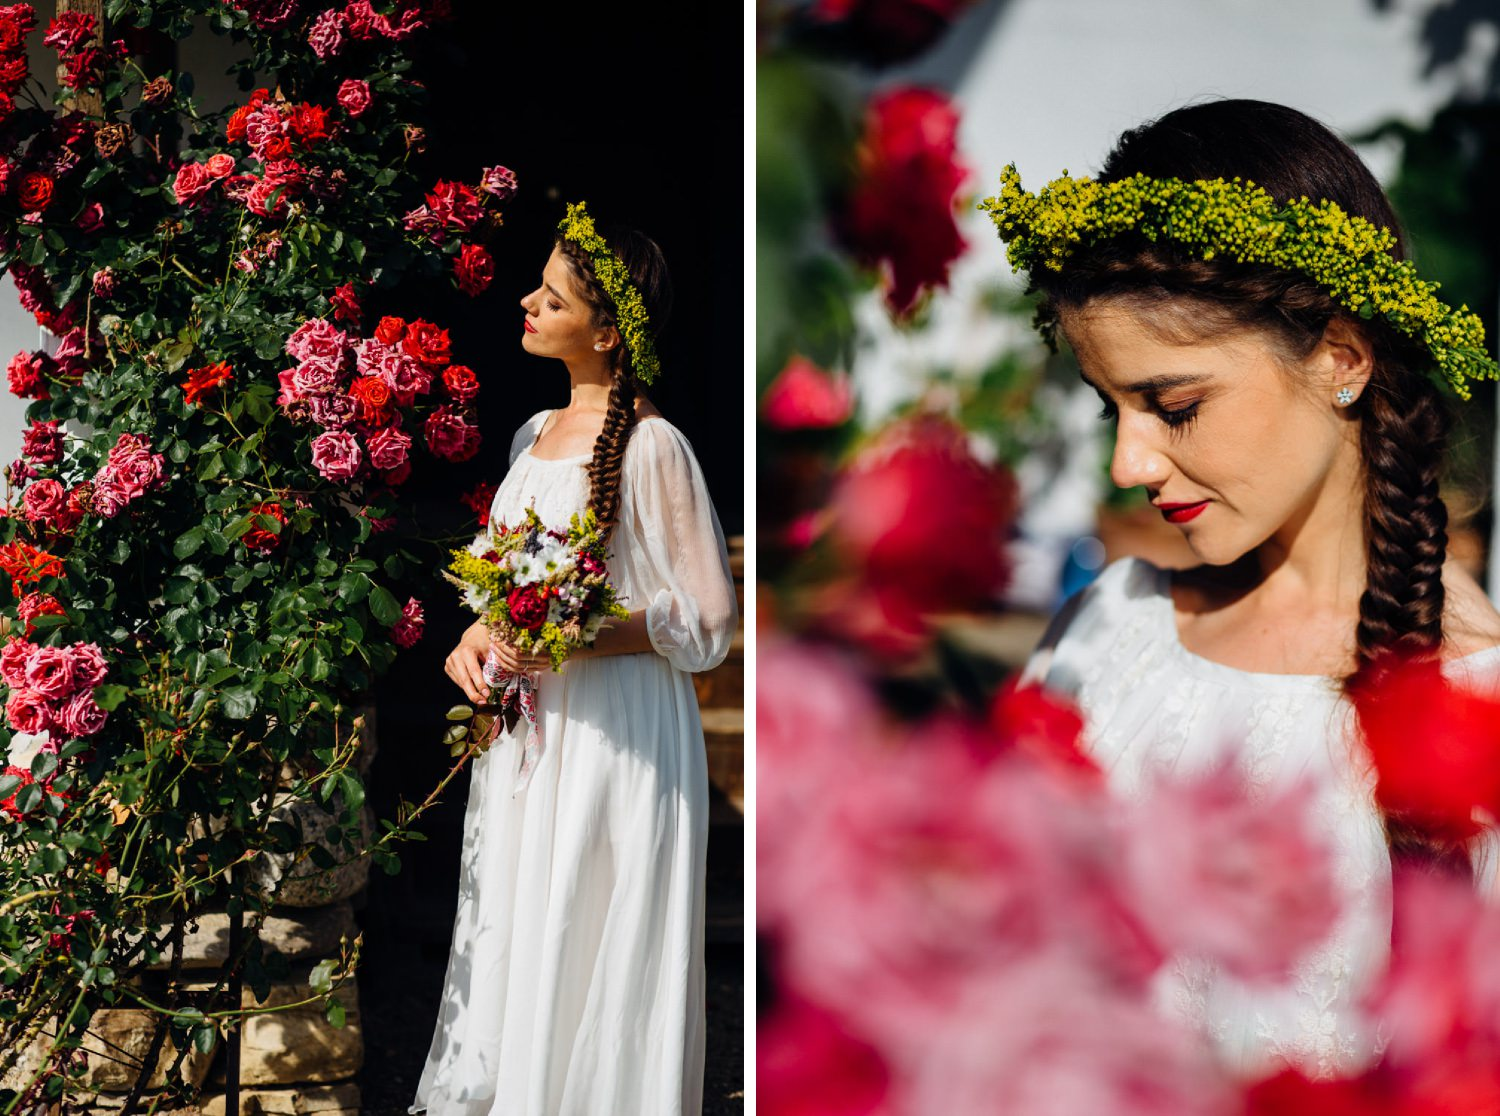 Bogdan & Luiza civil wedding Pitesti-1044